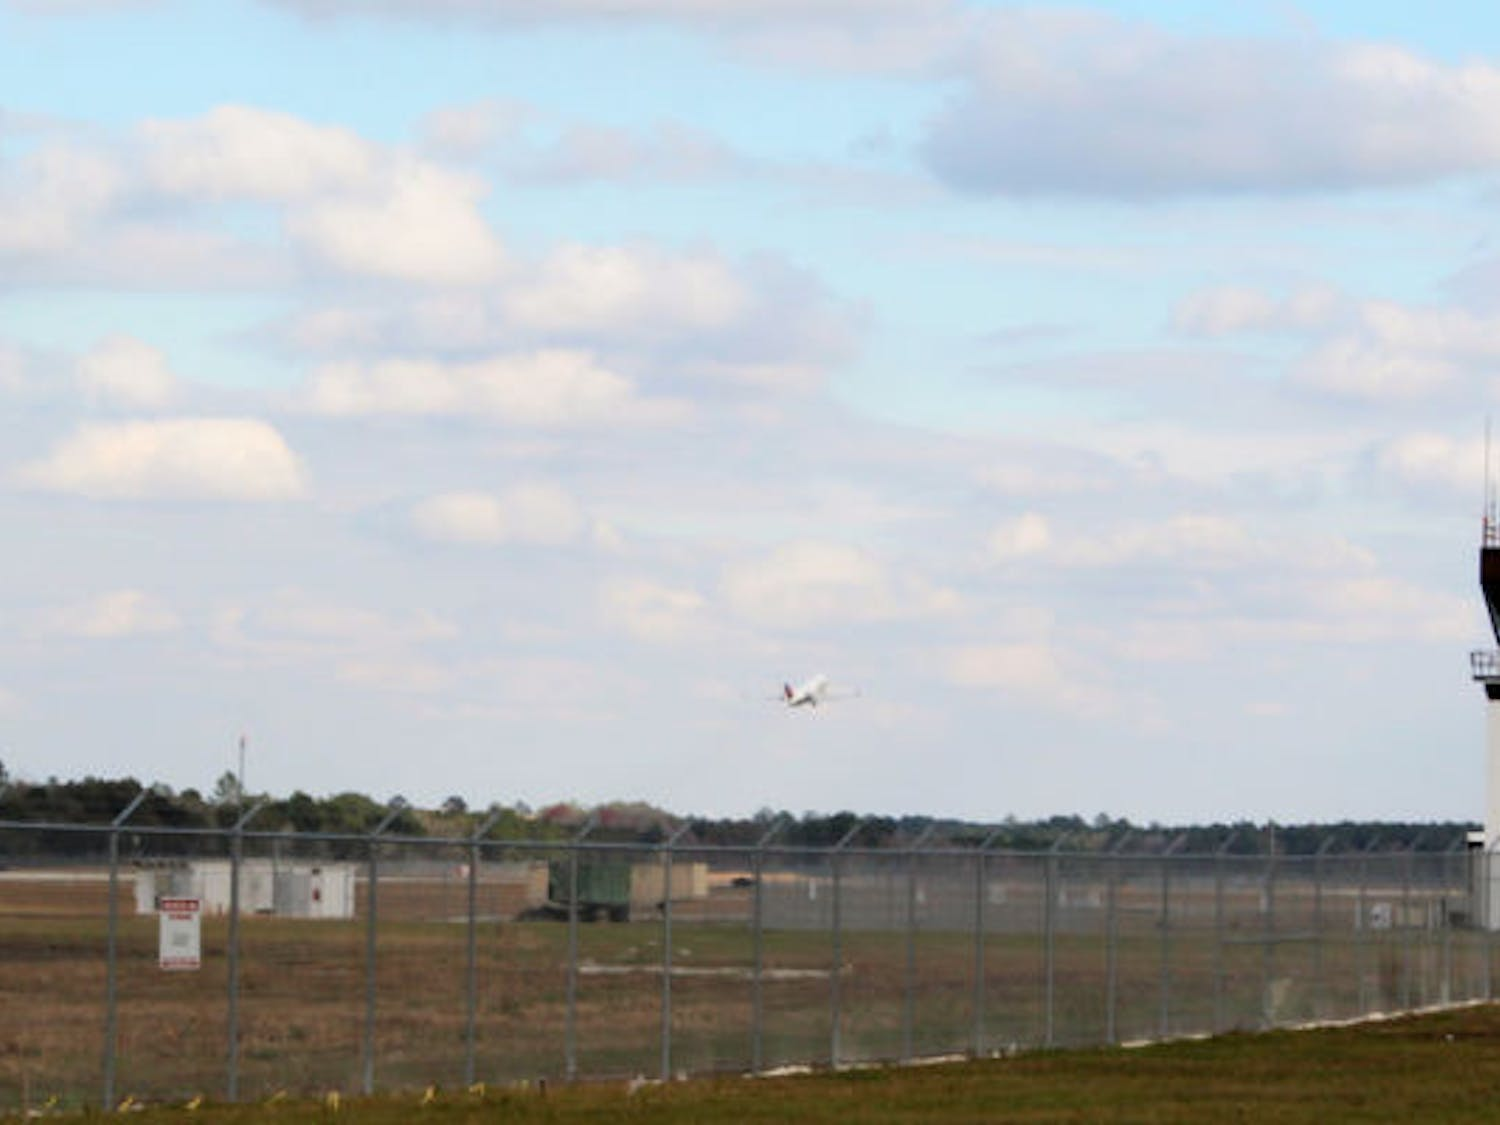 A plane takes off from Gainesville Regional Airport on Wednesday afternoon. An online survey created by the airport asked residents about their interest in nonstop flights to New York City.